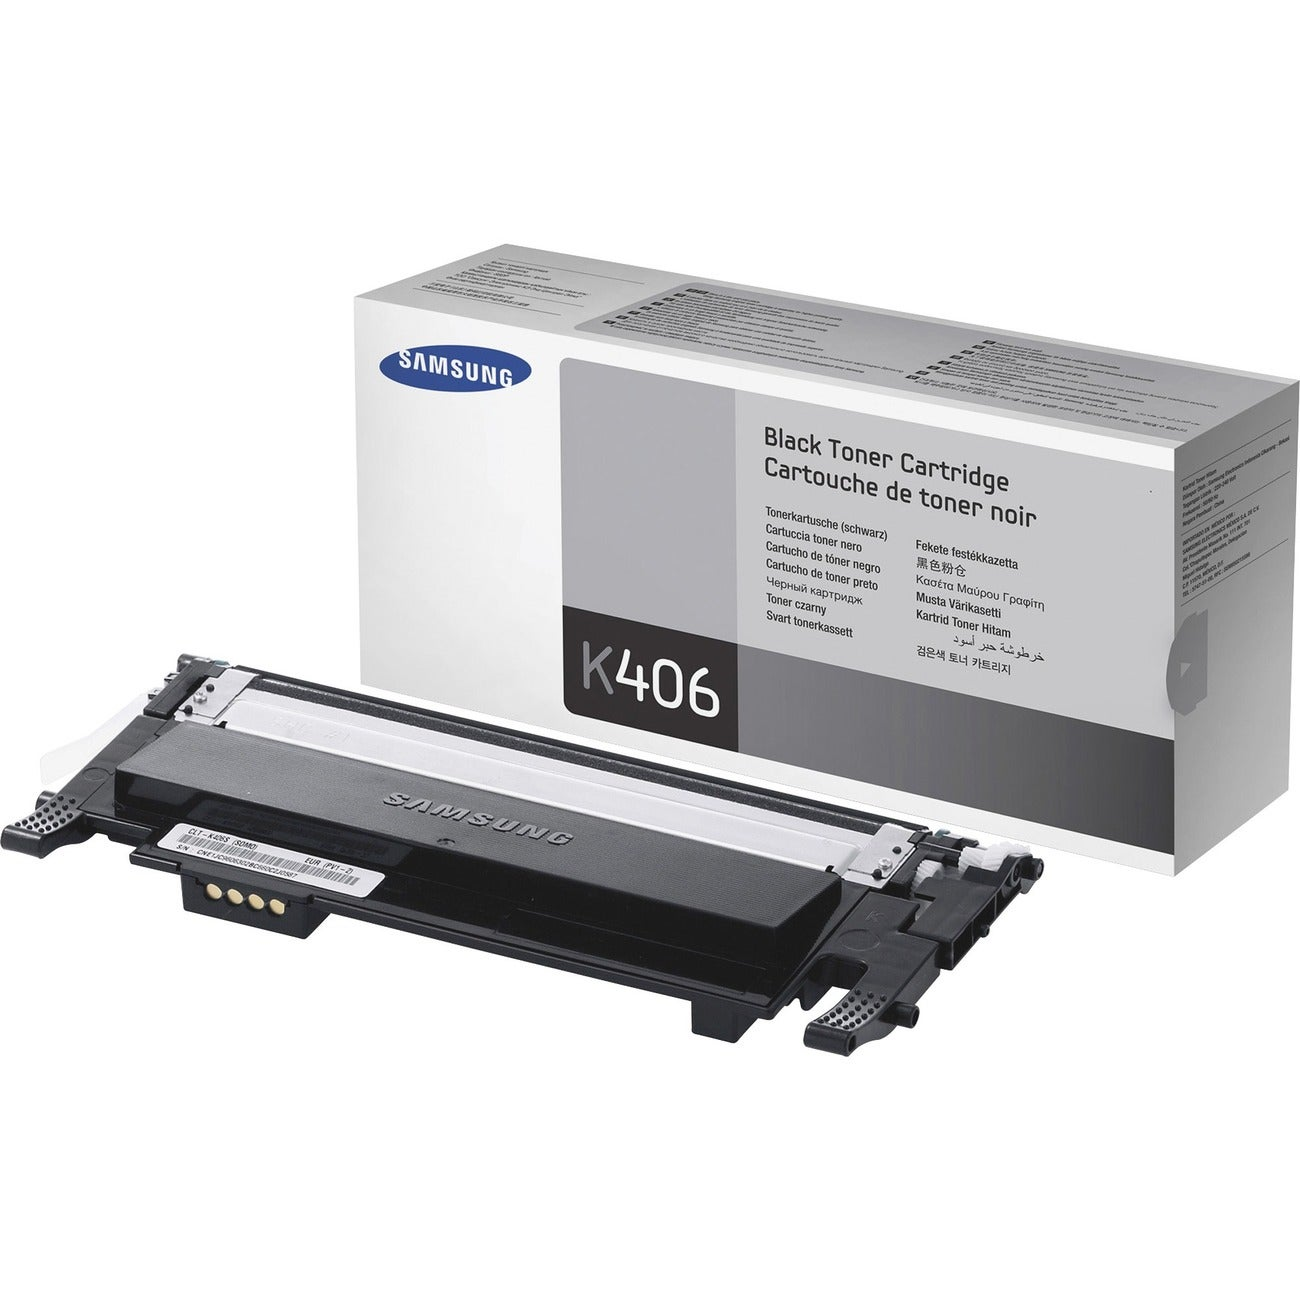 Samsung CLT-K406S Toner Cartridge - Black